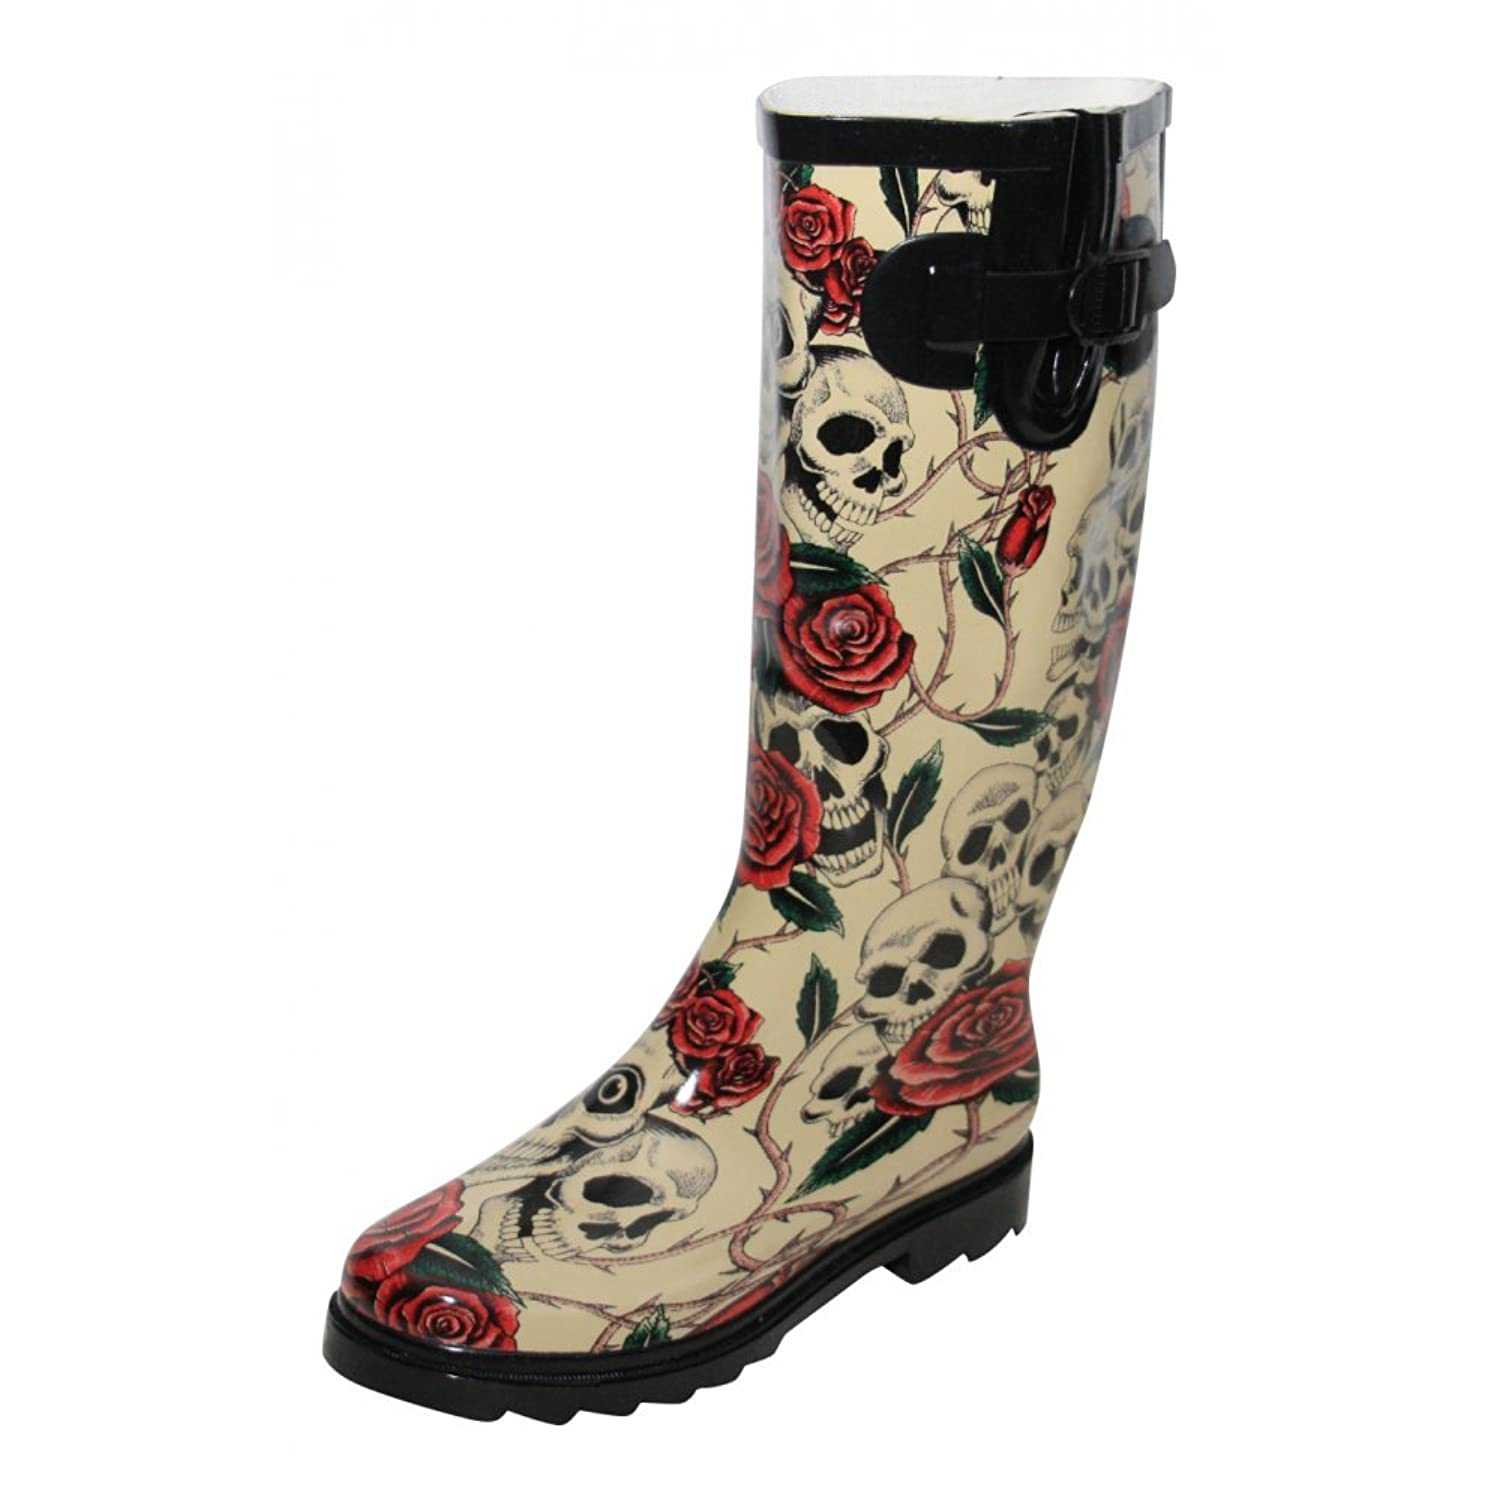 Ladies New Skull Roses Wellington Wellies Goth Flat Black Red Boots Rain Snow LO_6969